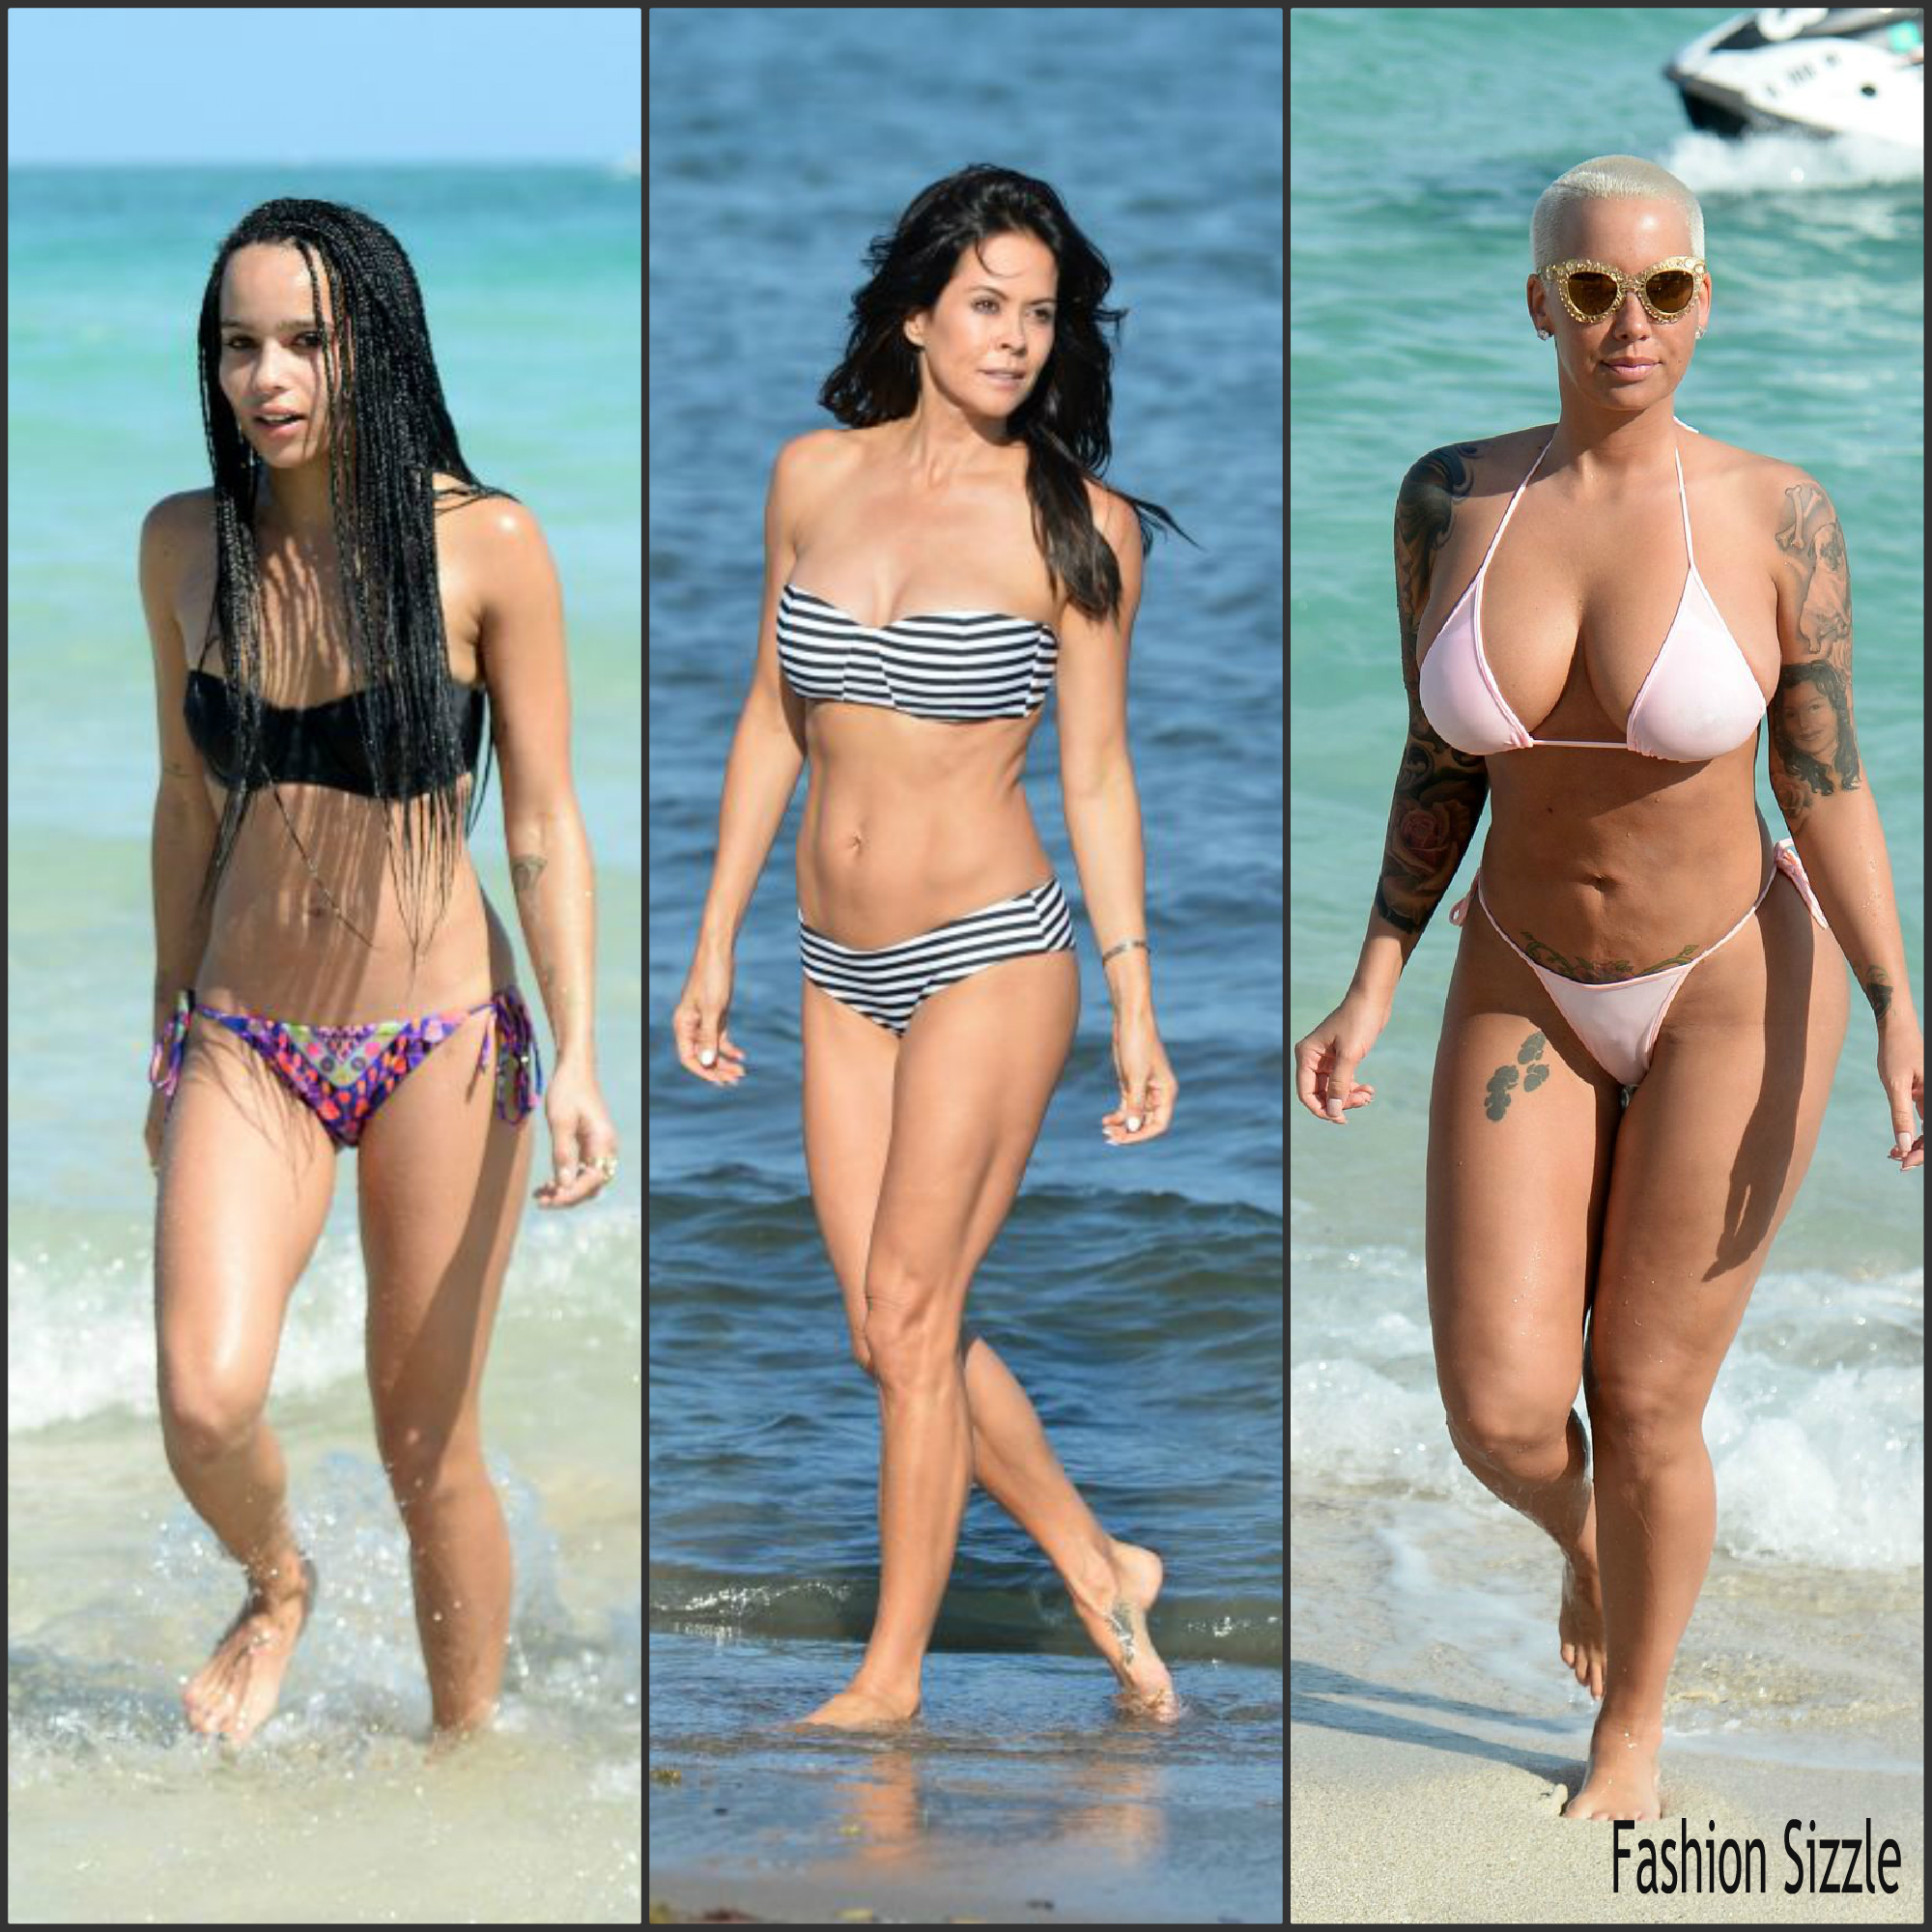 celebrities-beach-bodies-bikini-2015